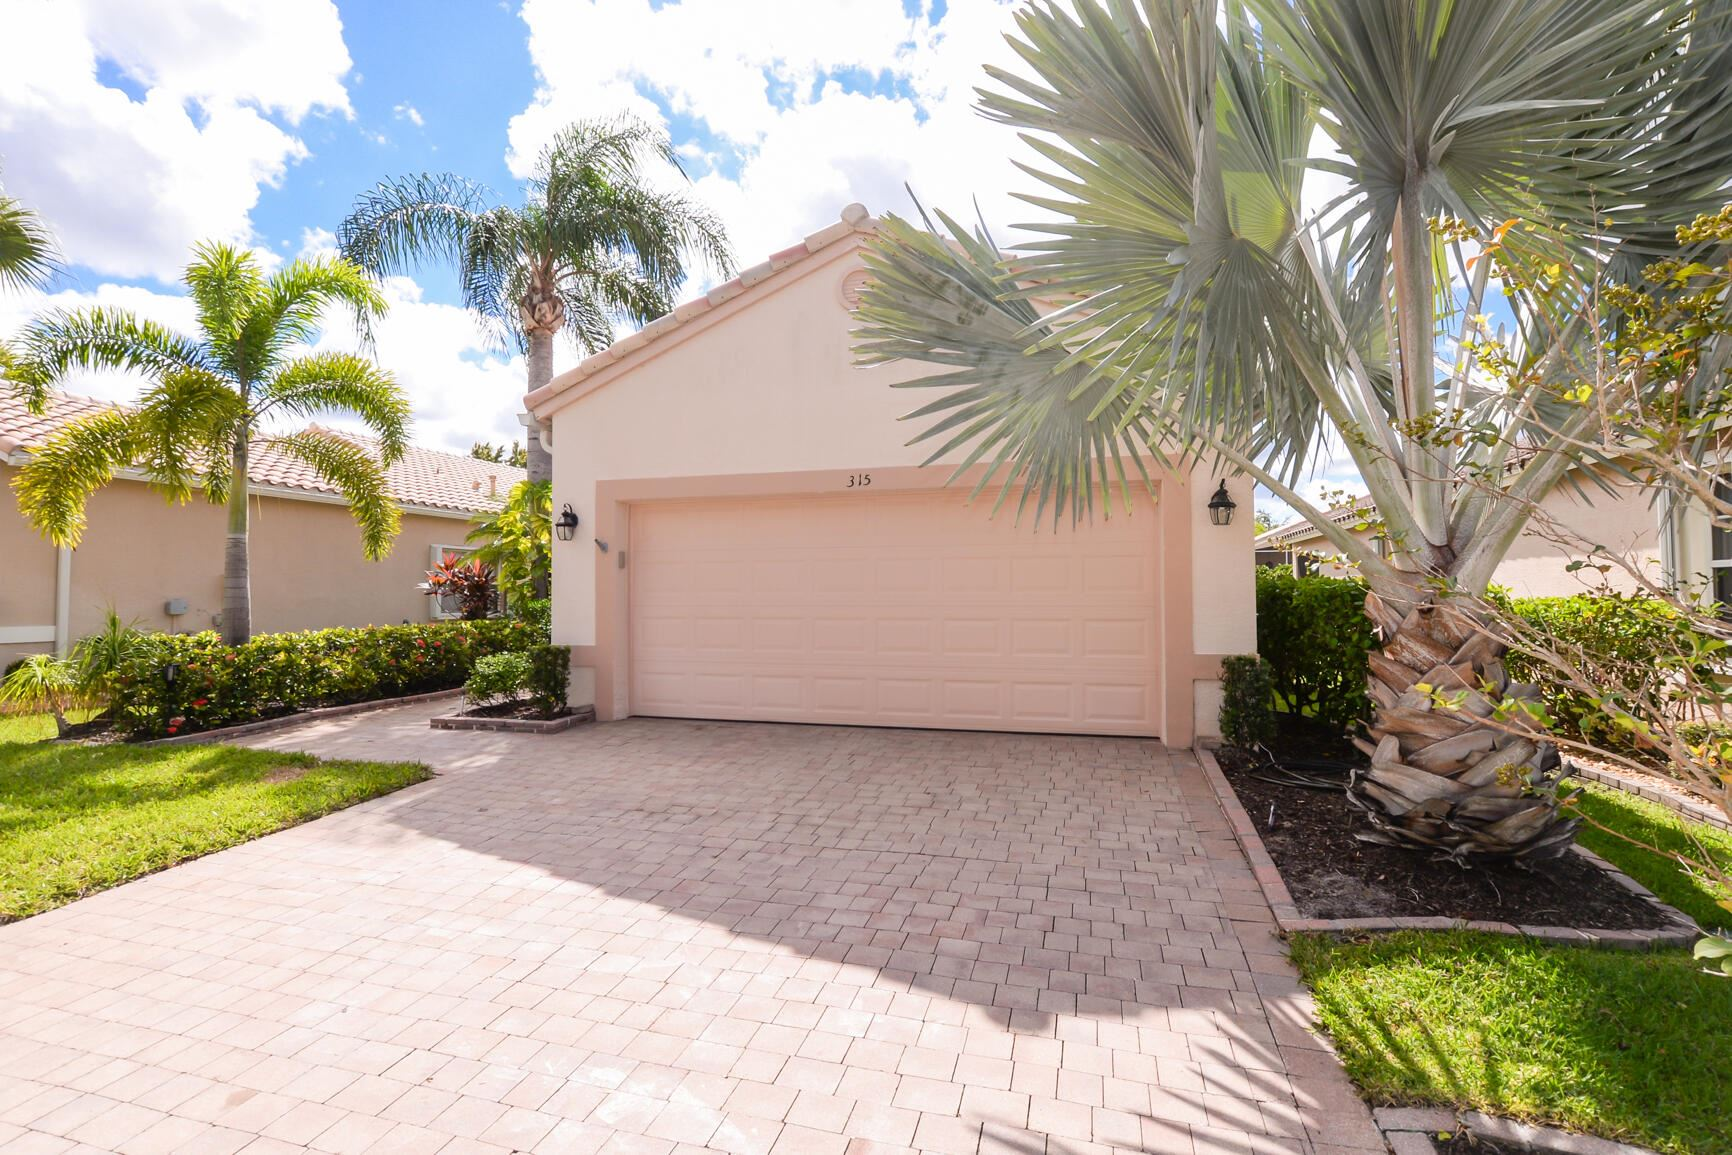 Photo of 315 NW Breezy Point Loop, Port Saint Lucie, FL 34986 (MLS # RX-10749029)